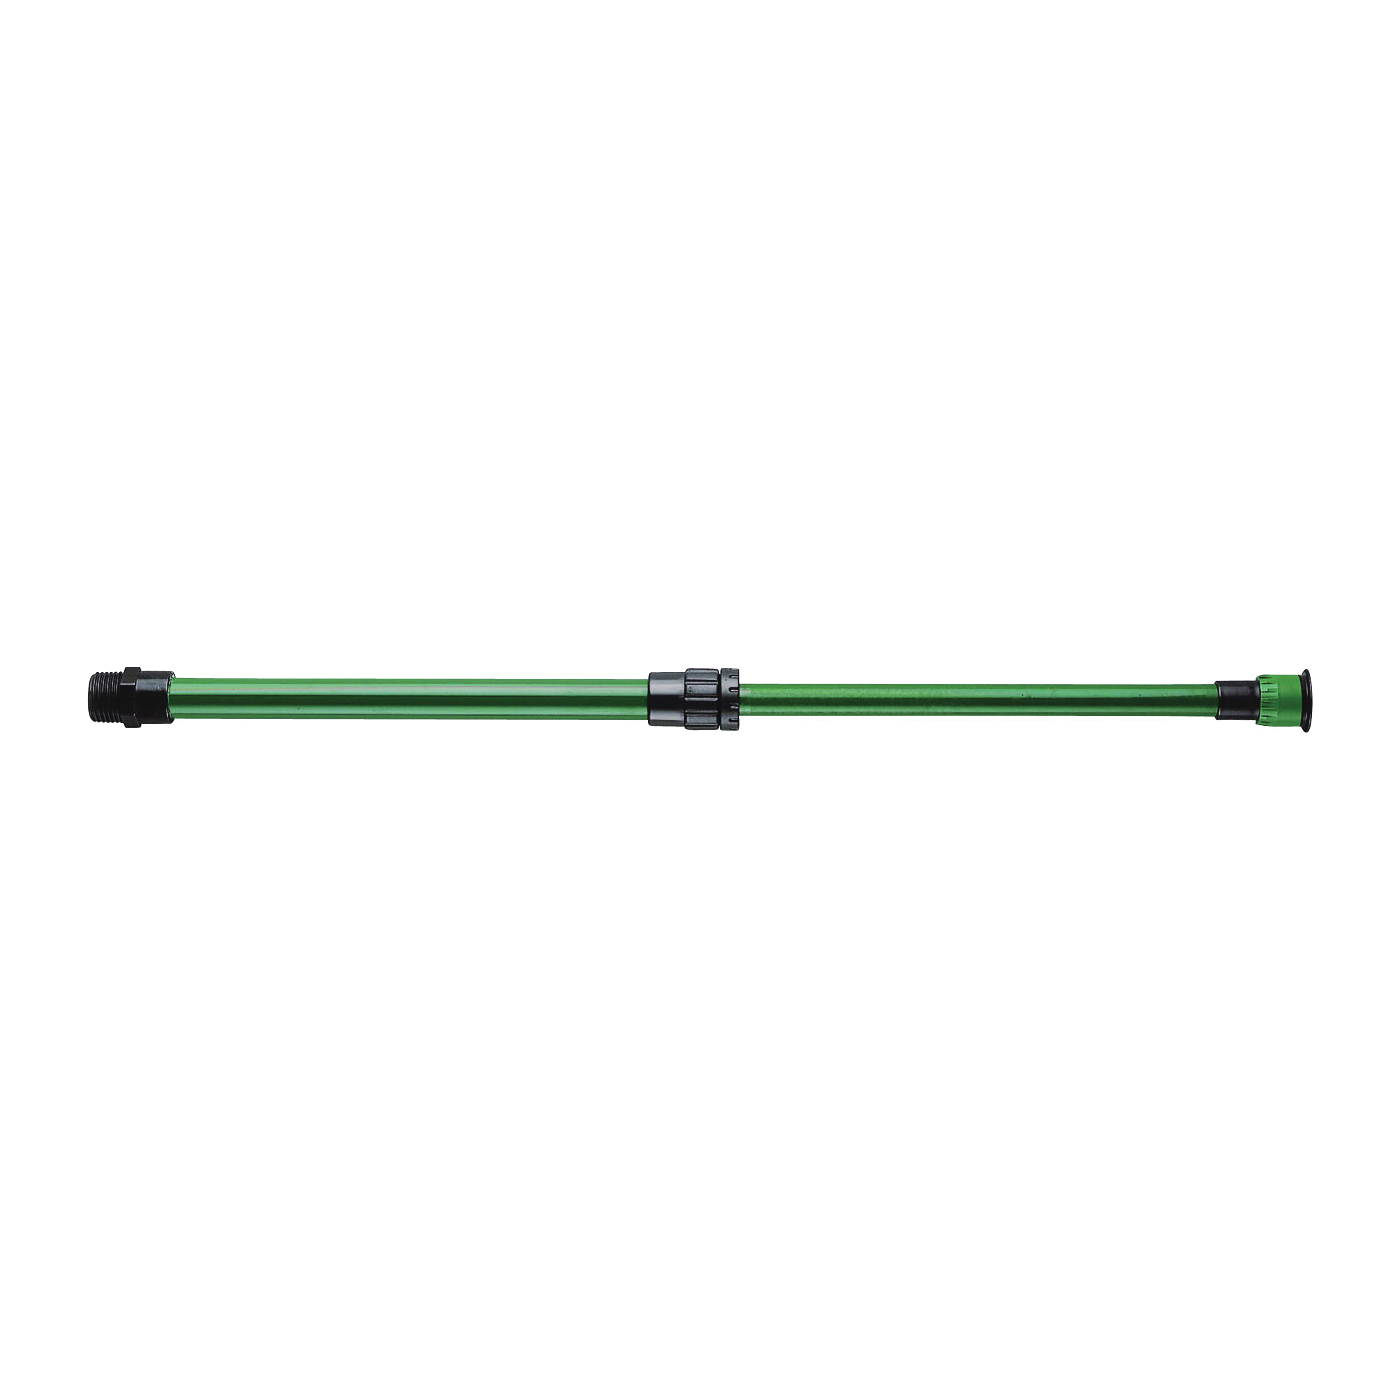 Picture of Orbit 37330 Shrub Riser with Adjustable Nozzle, 1/2 in Connection, MNPT, Aluminum, Green